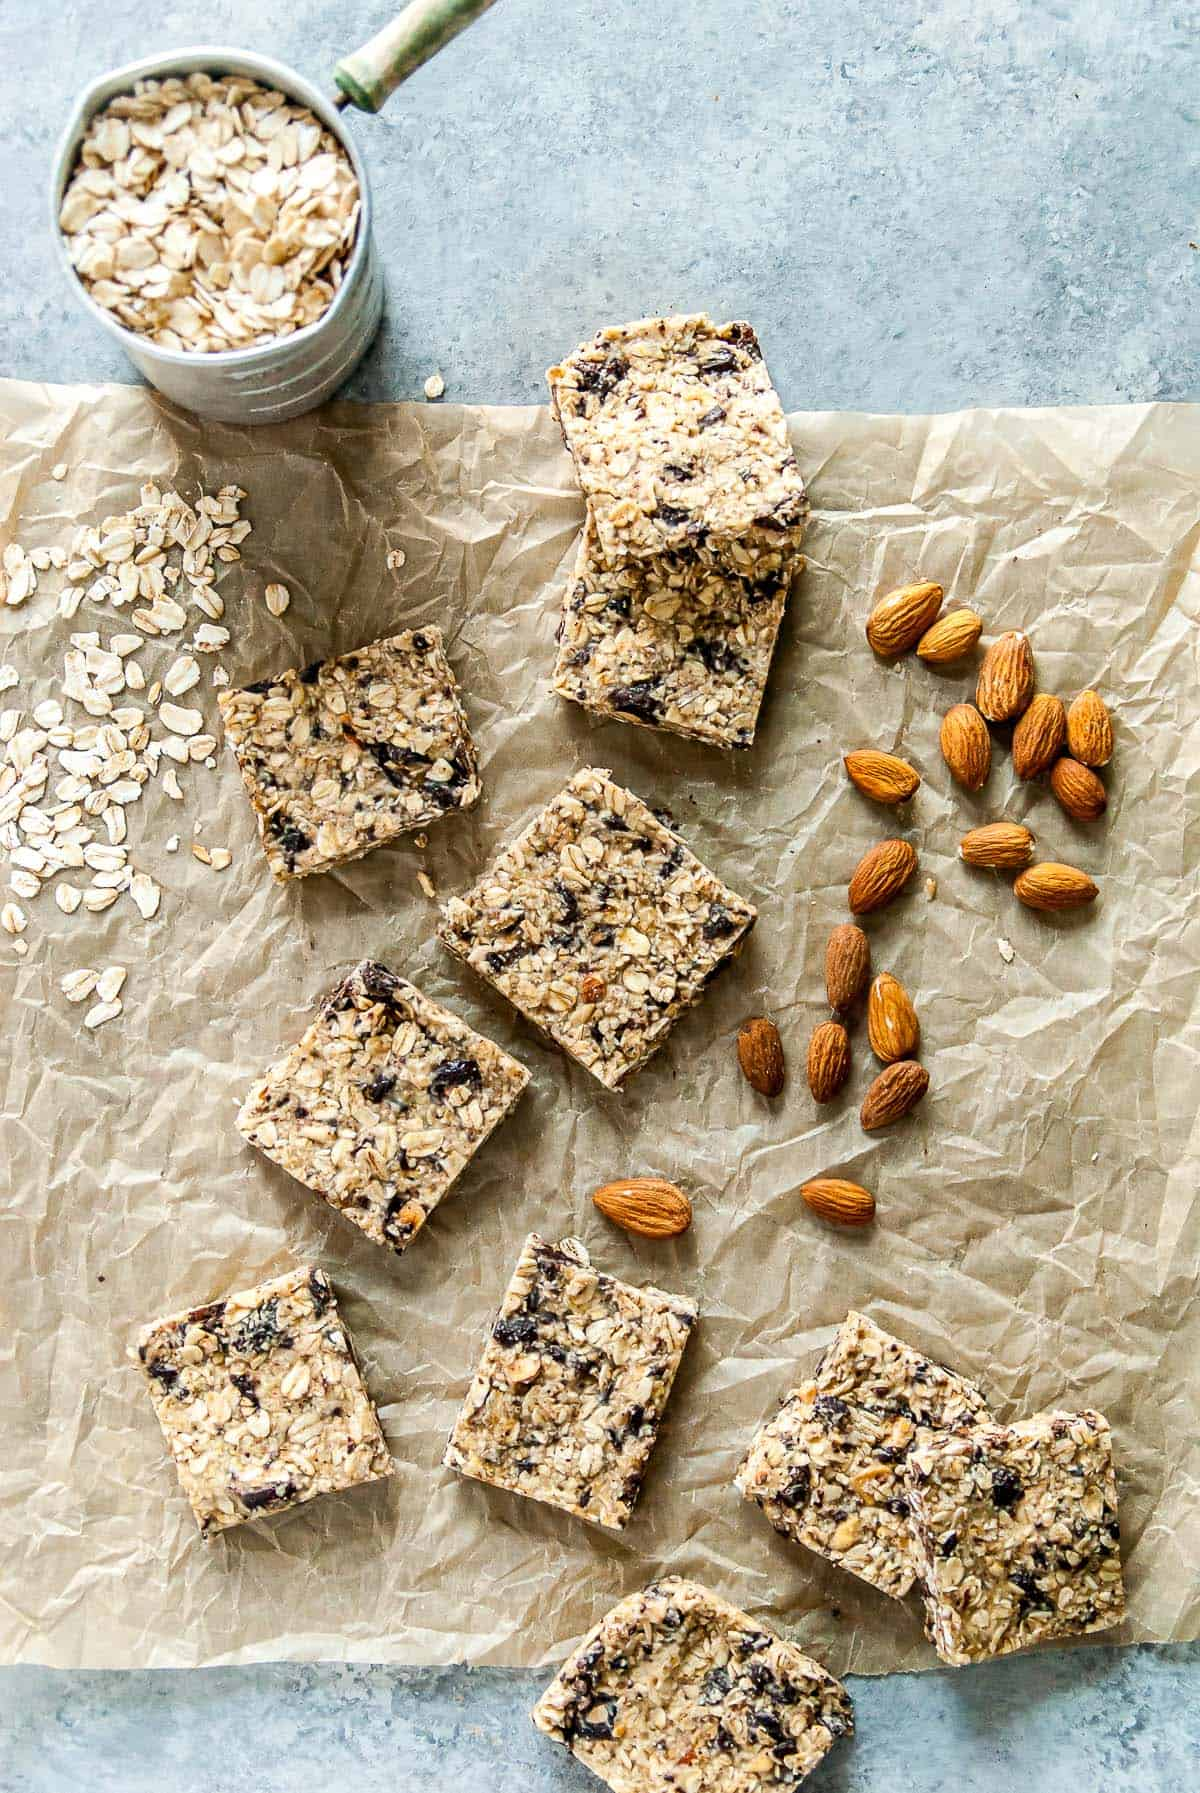 Quick and easy chocolate almond vegan granola bars, perfect for snacking or dessert! Vegan and can be made gluten-free.